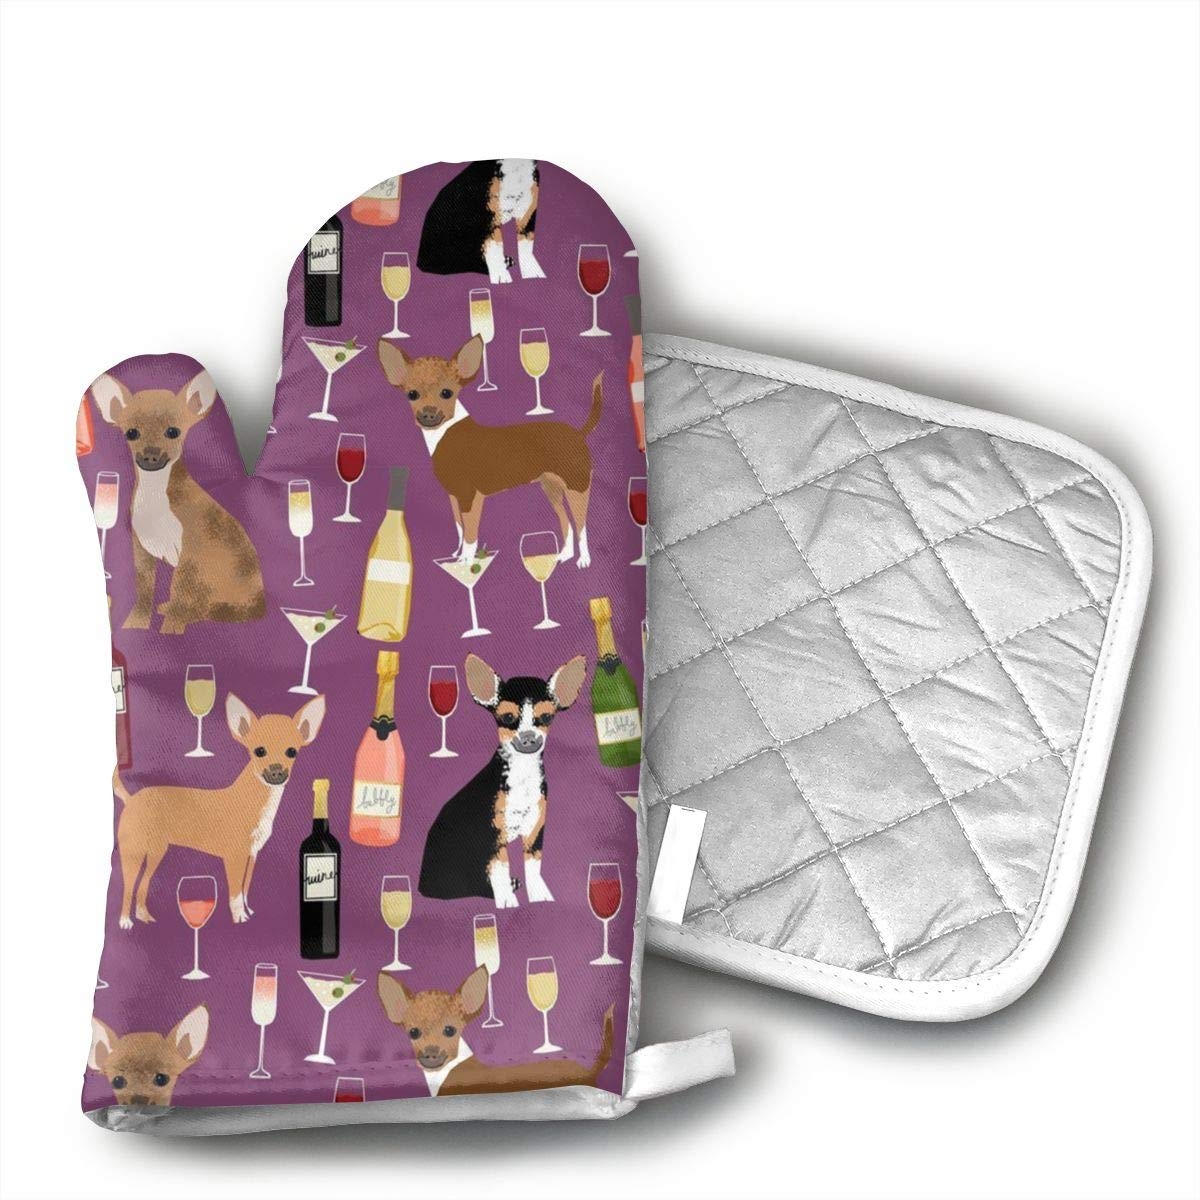 UYRHFS Chihuahua Wine Champagne Cocktails Cute Dog Breed Oven Mitts and Pot Holder Kitchen Set with, Heat Resistant, Oven Gloves and Pot Holders 2pcs Set for BBQ Cooking Baking